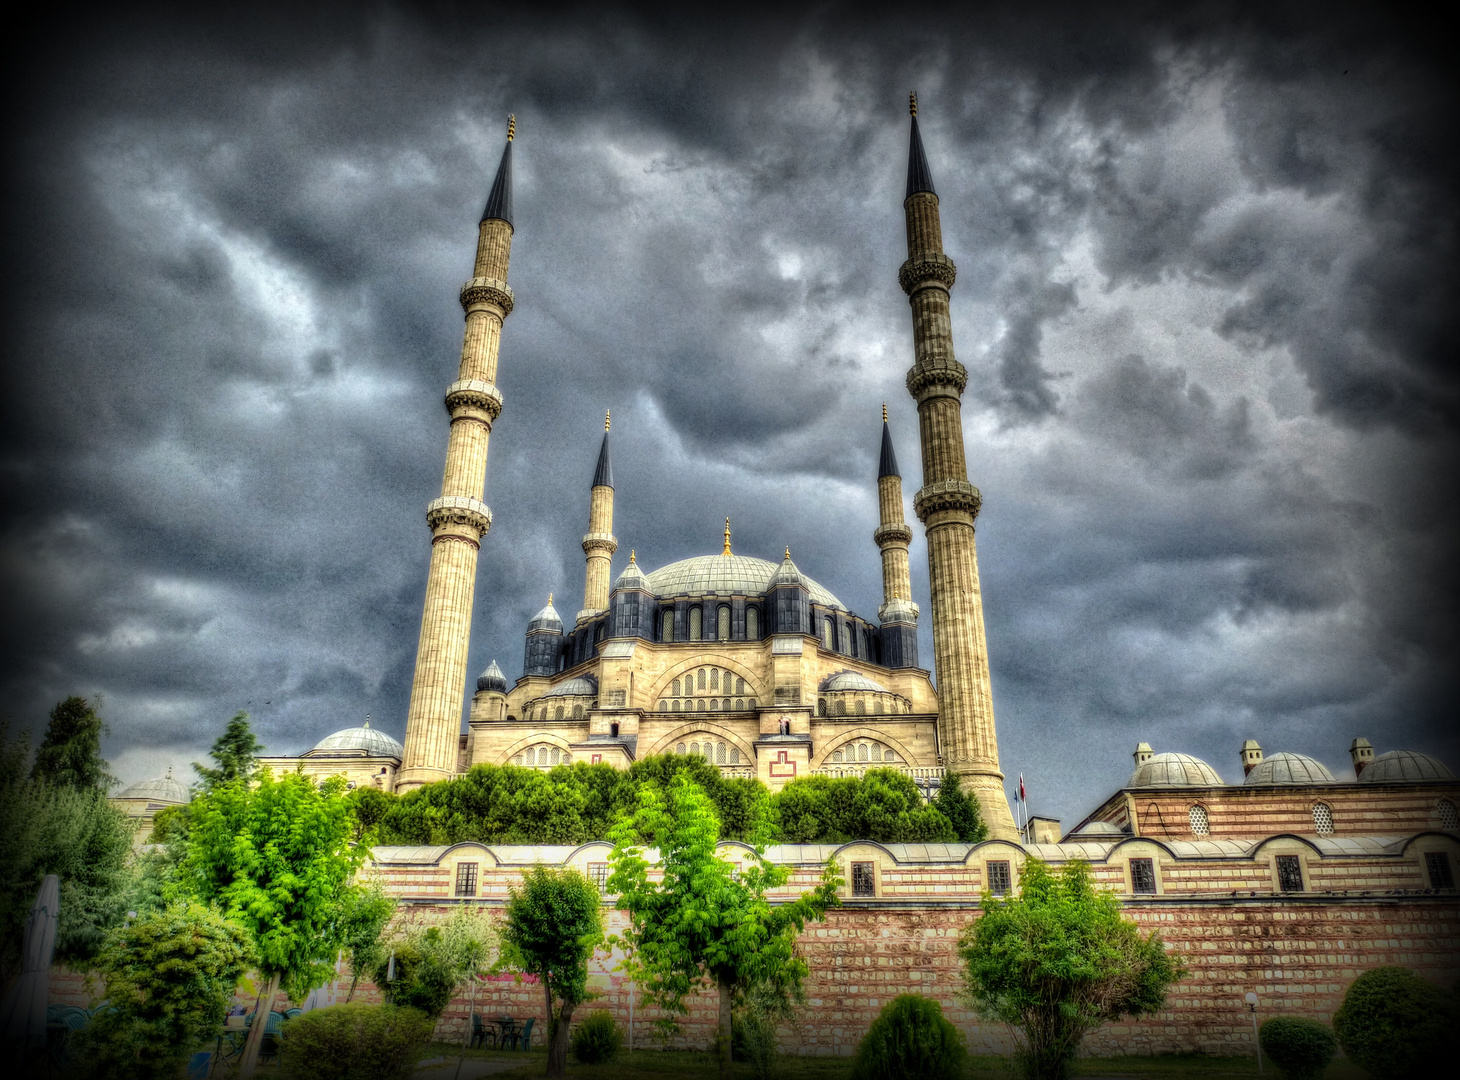 The Selimiye Mosque